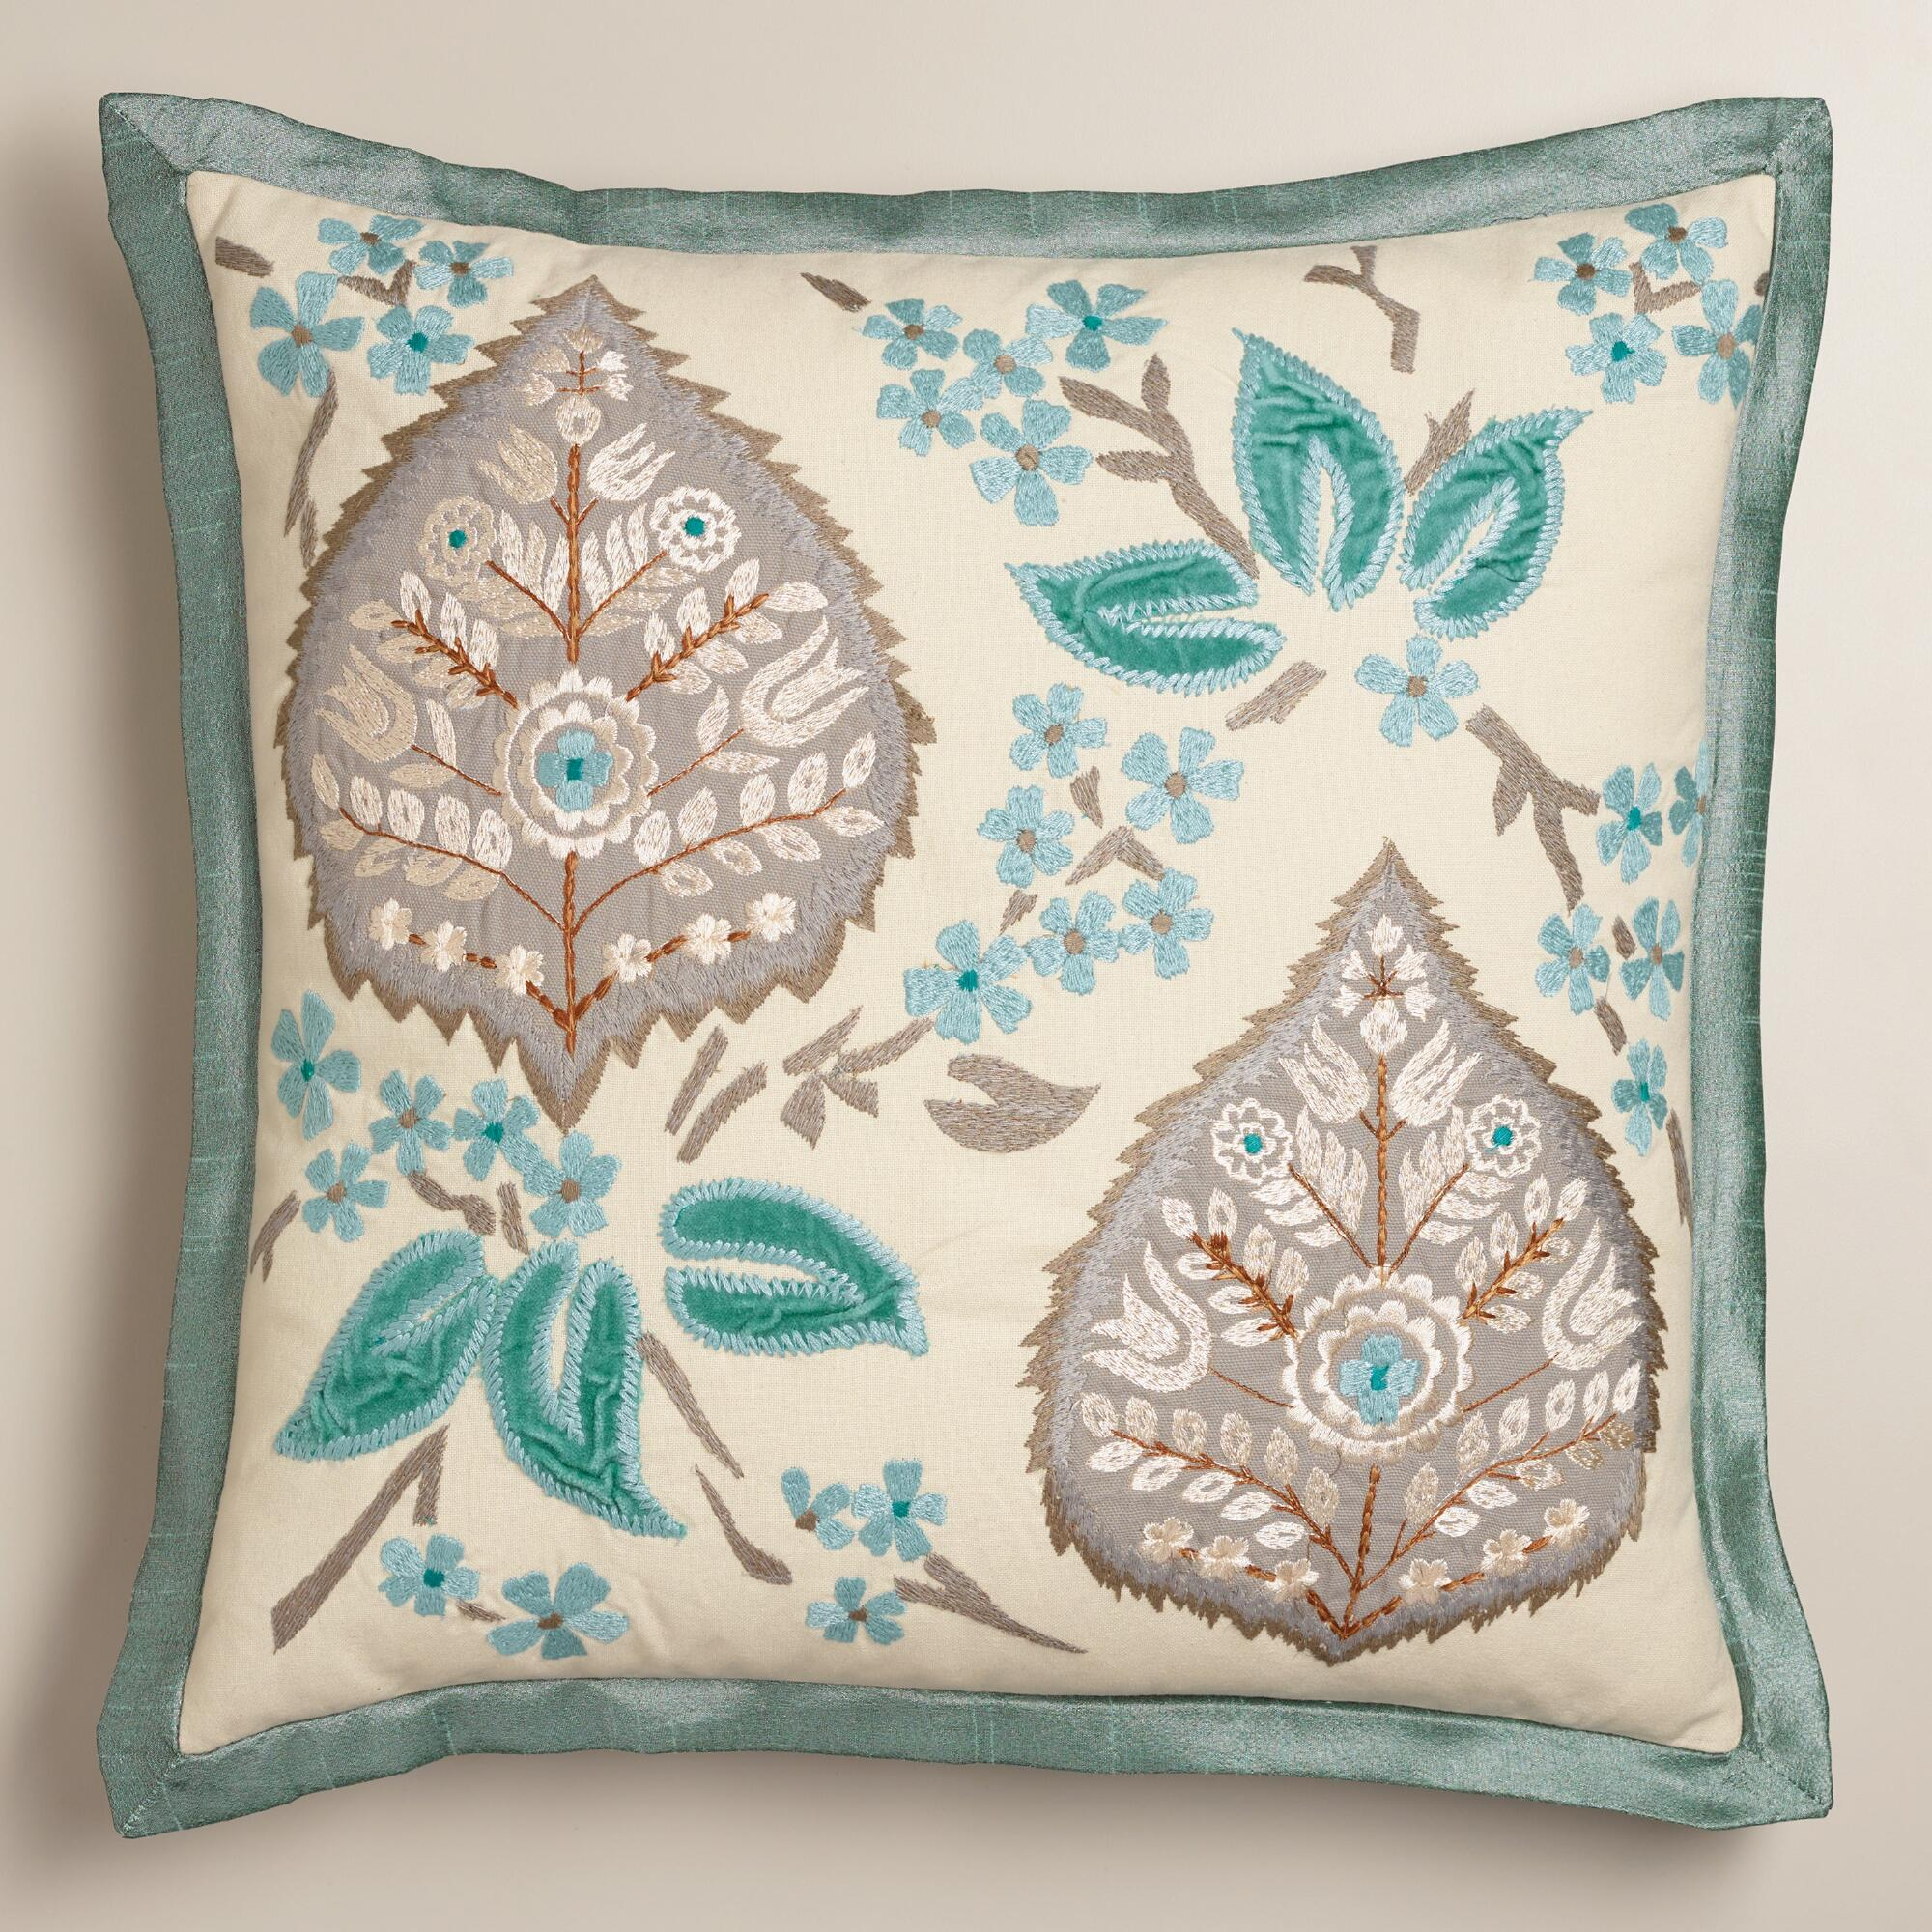 Greyish Blue Throw Pillows : Blue and Gray Embroidered Leaf Throw Pillow World Market